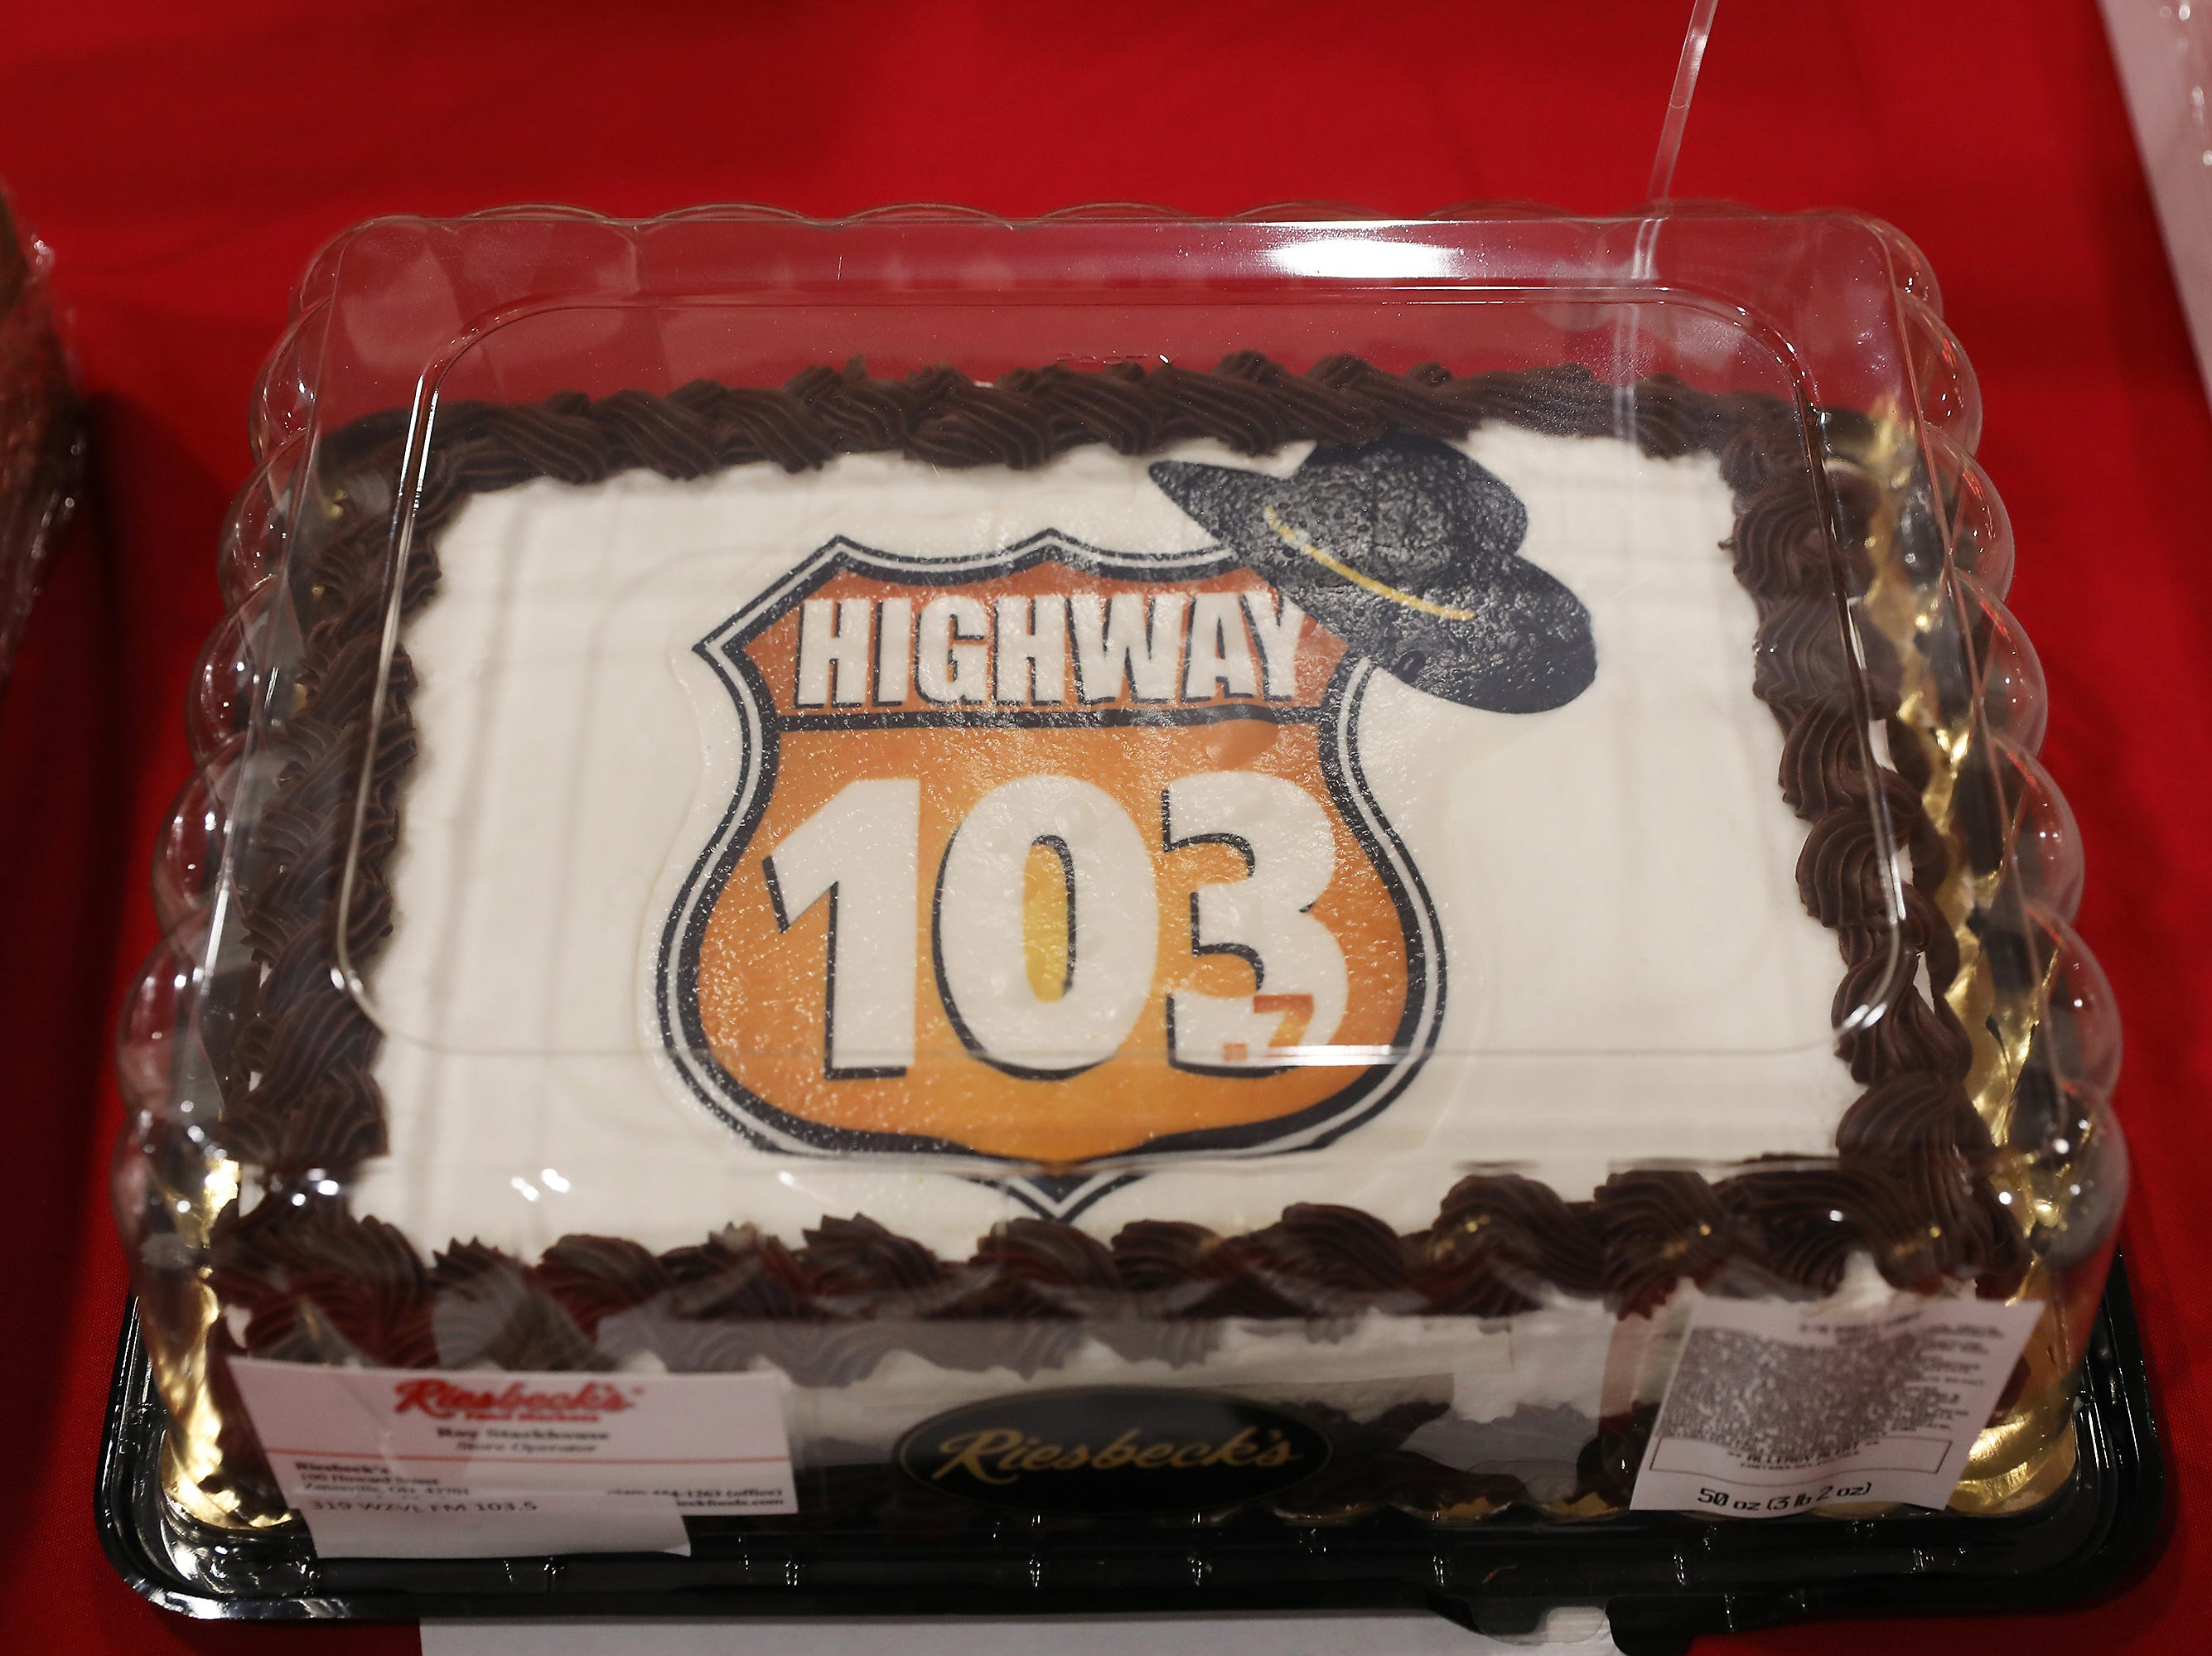 1:45 P.M. Friday cake 319 WZVL FM 103.7 - tickets to Alan Jackson on May 10, 4 tickets to the Professional Bull Riding on April 27 in Columbus; $422